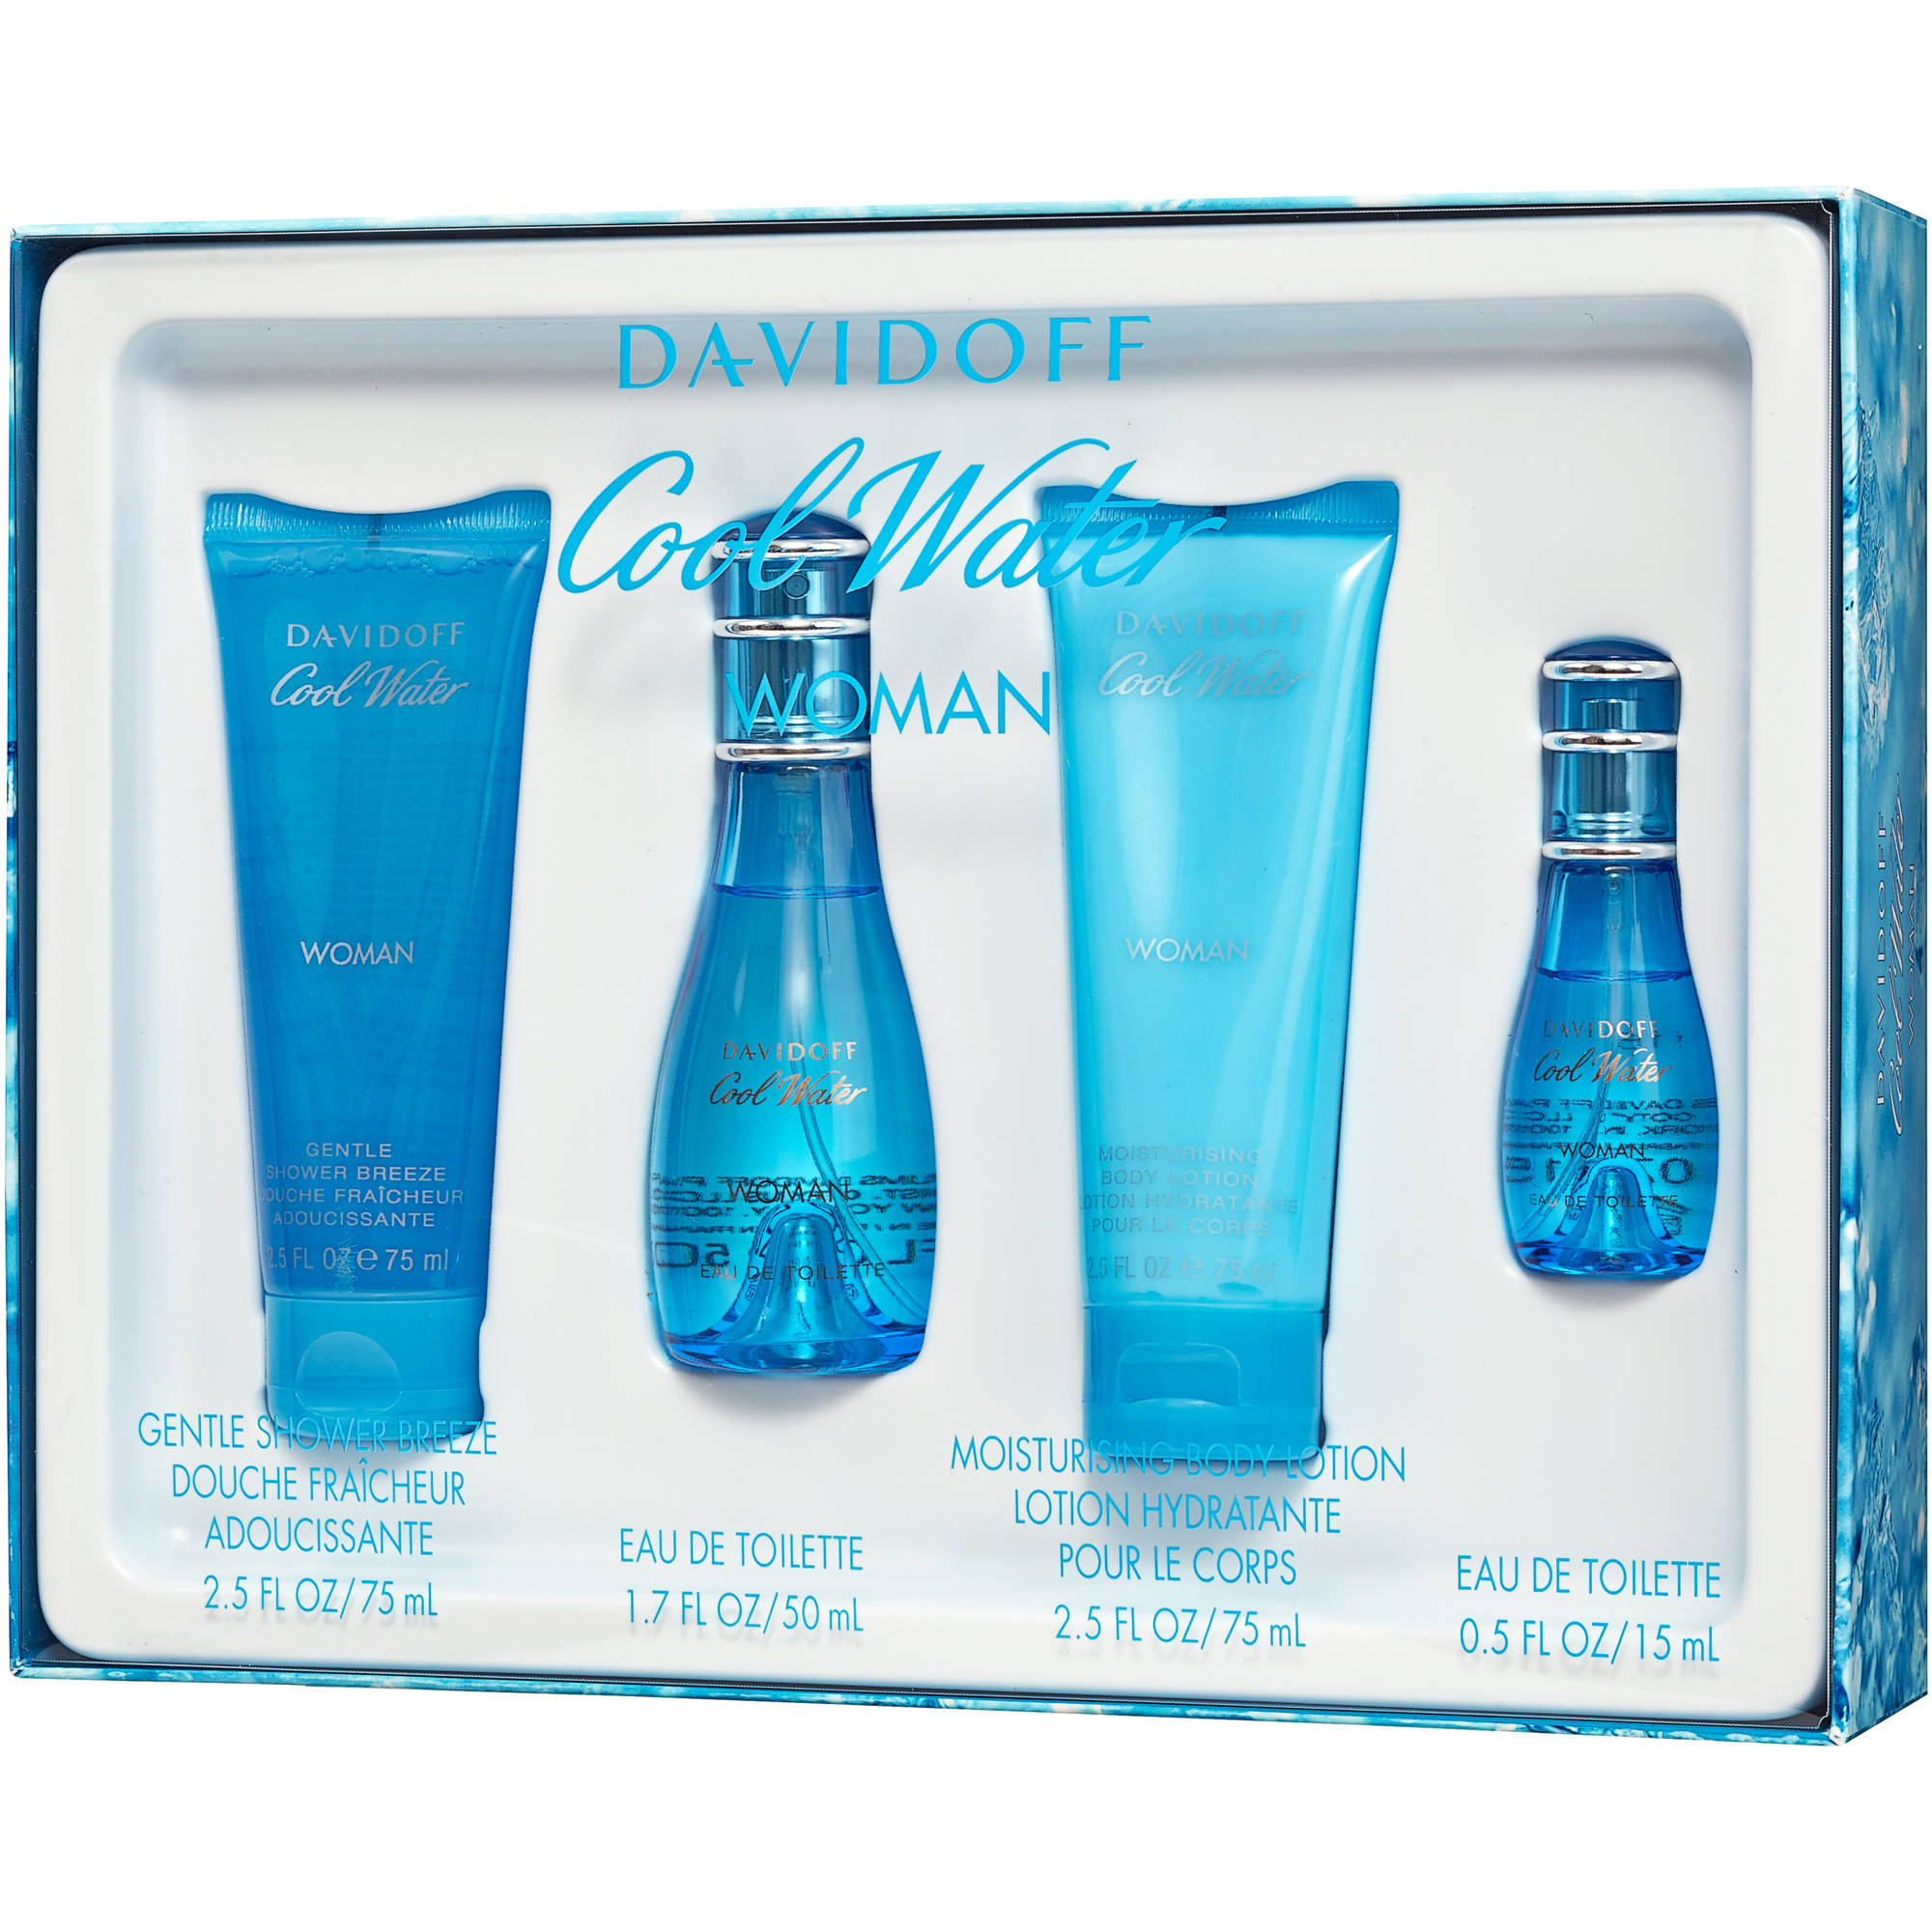 Davidoff Cool Water Woman Bath Gift Set, 4 pc